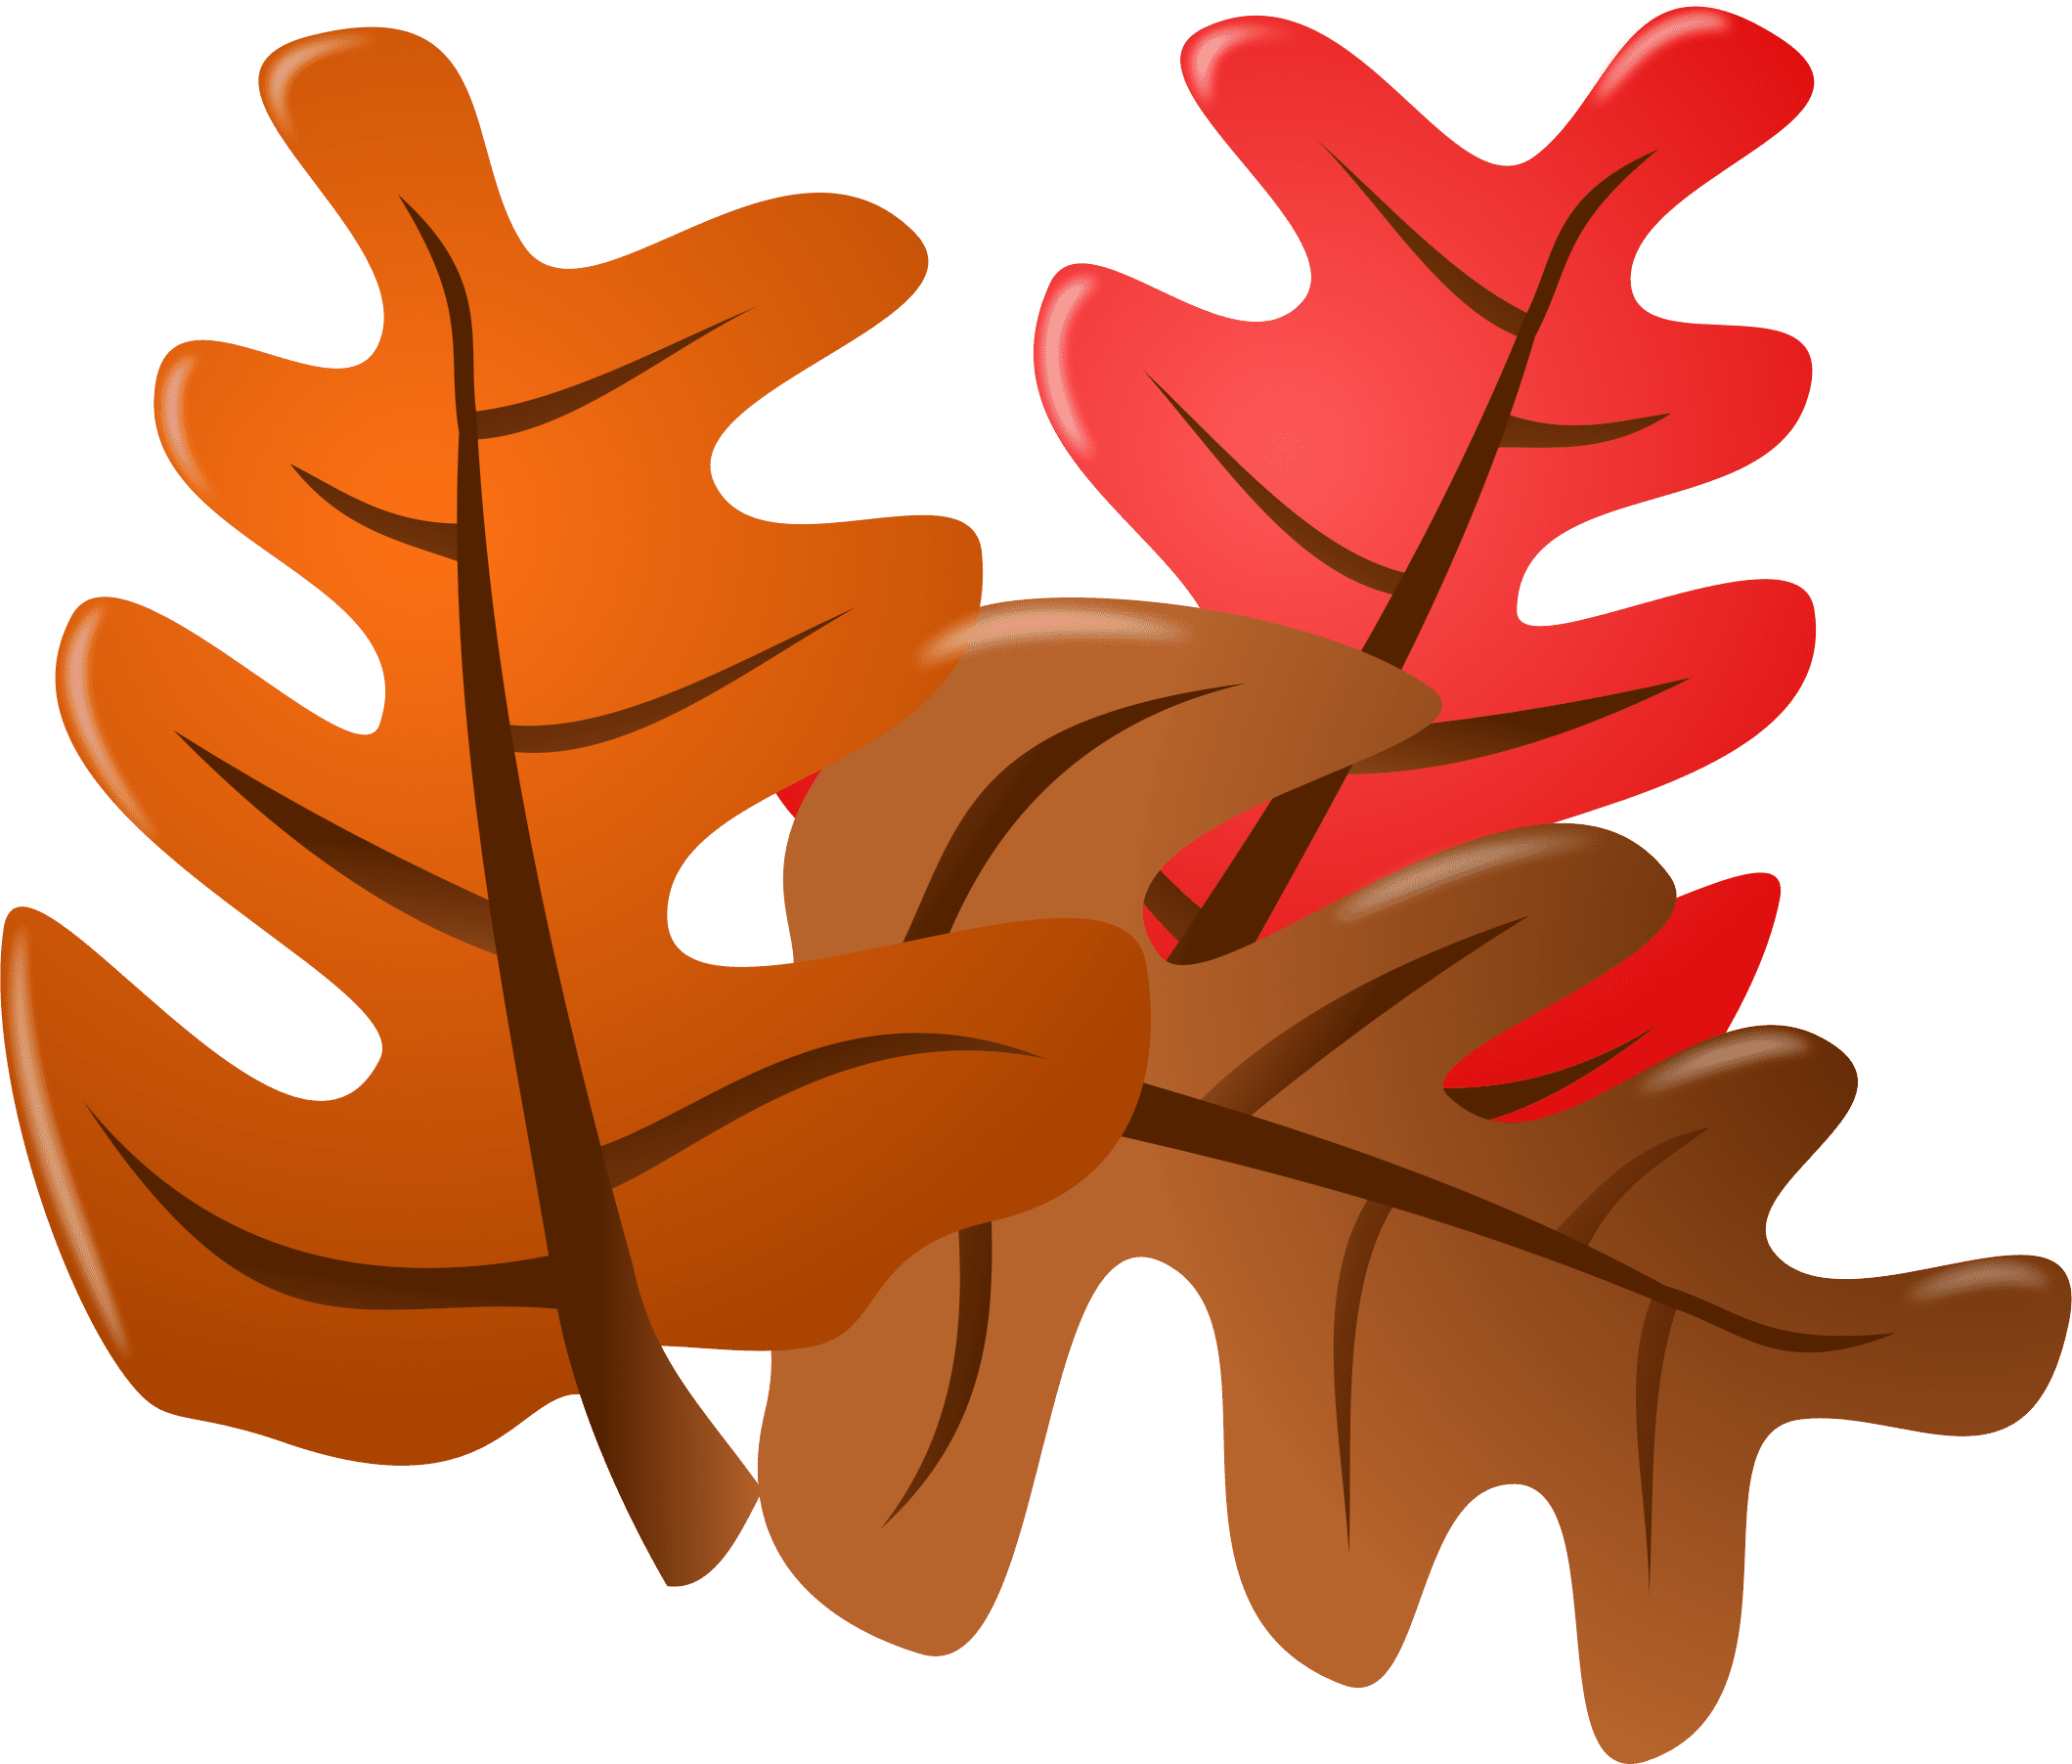 Leaf clipart apple tree. Free autumn and fall